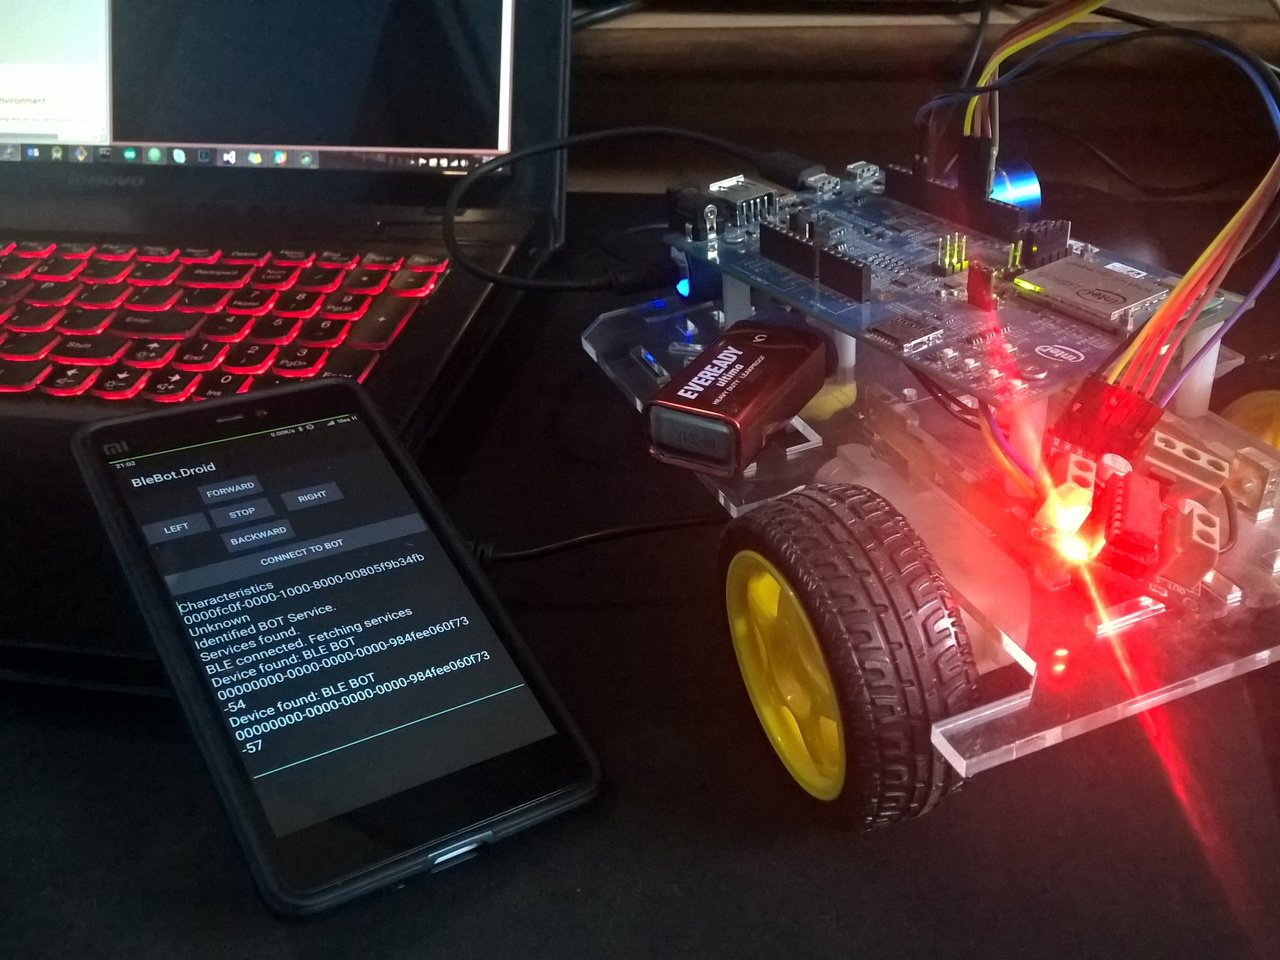 BLE controlled BOT